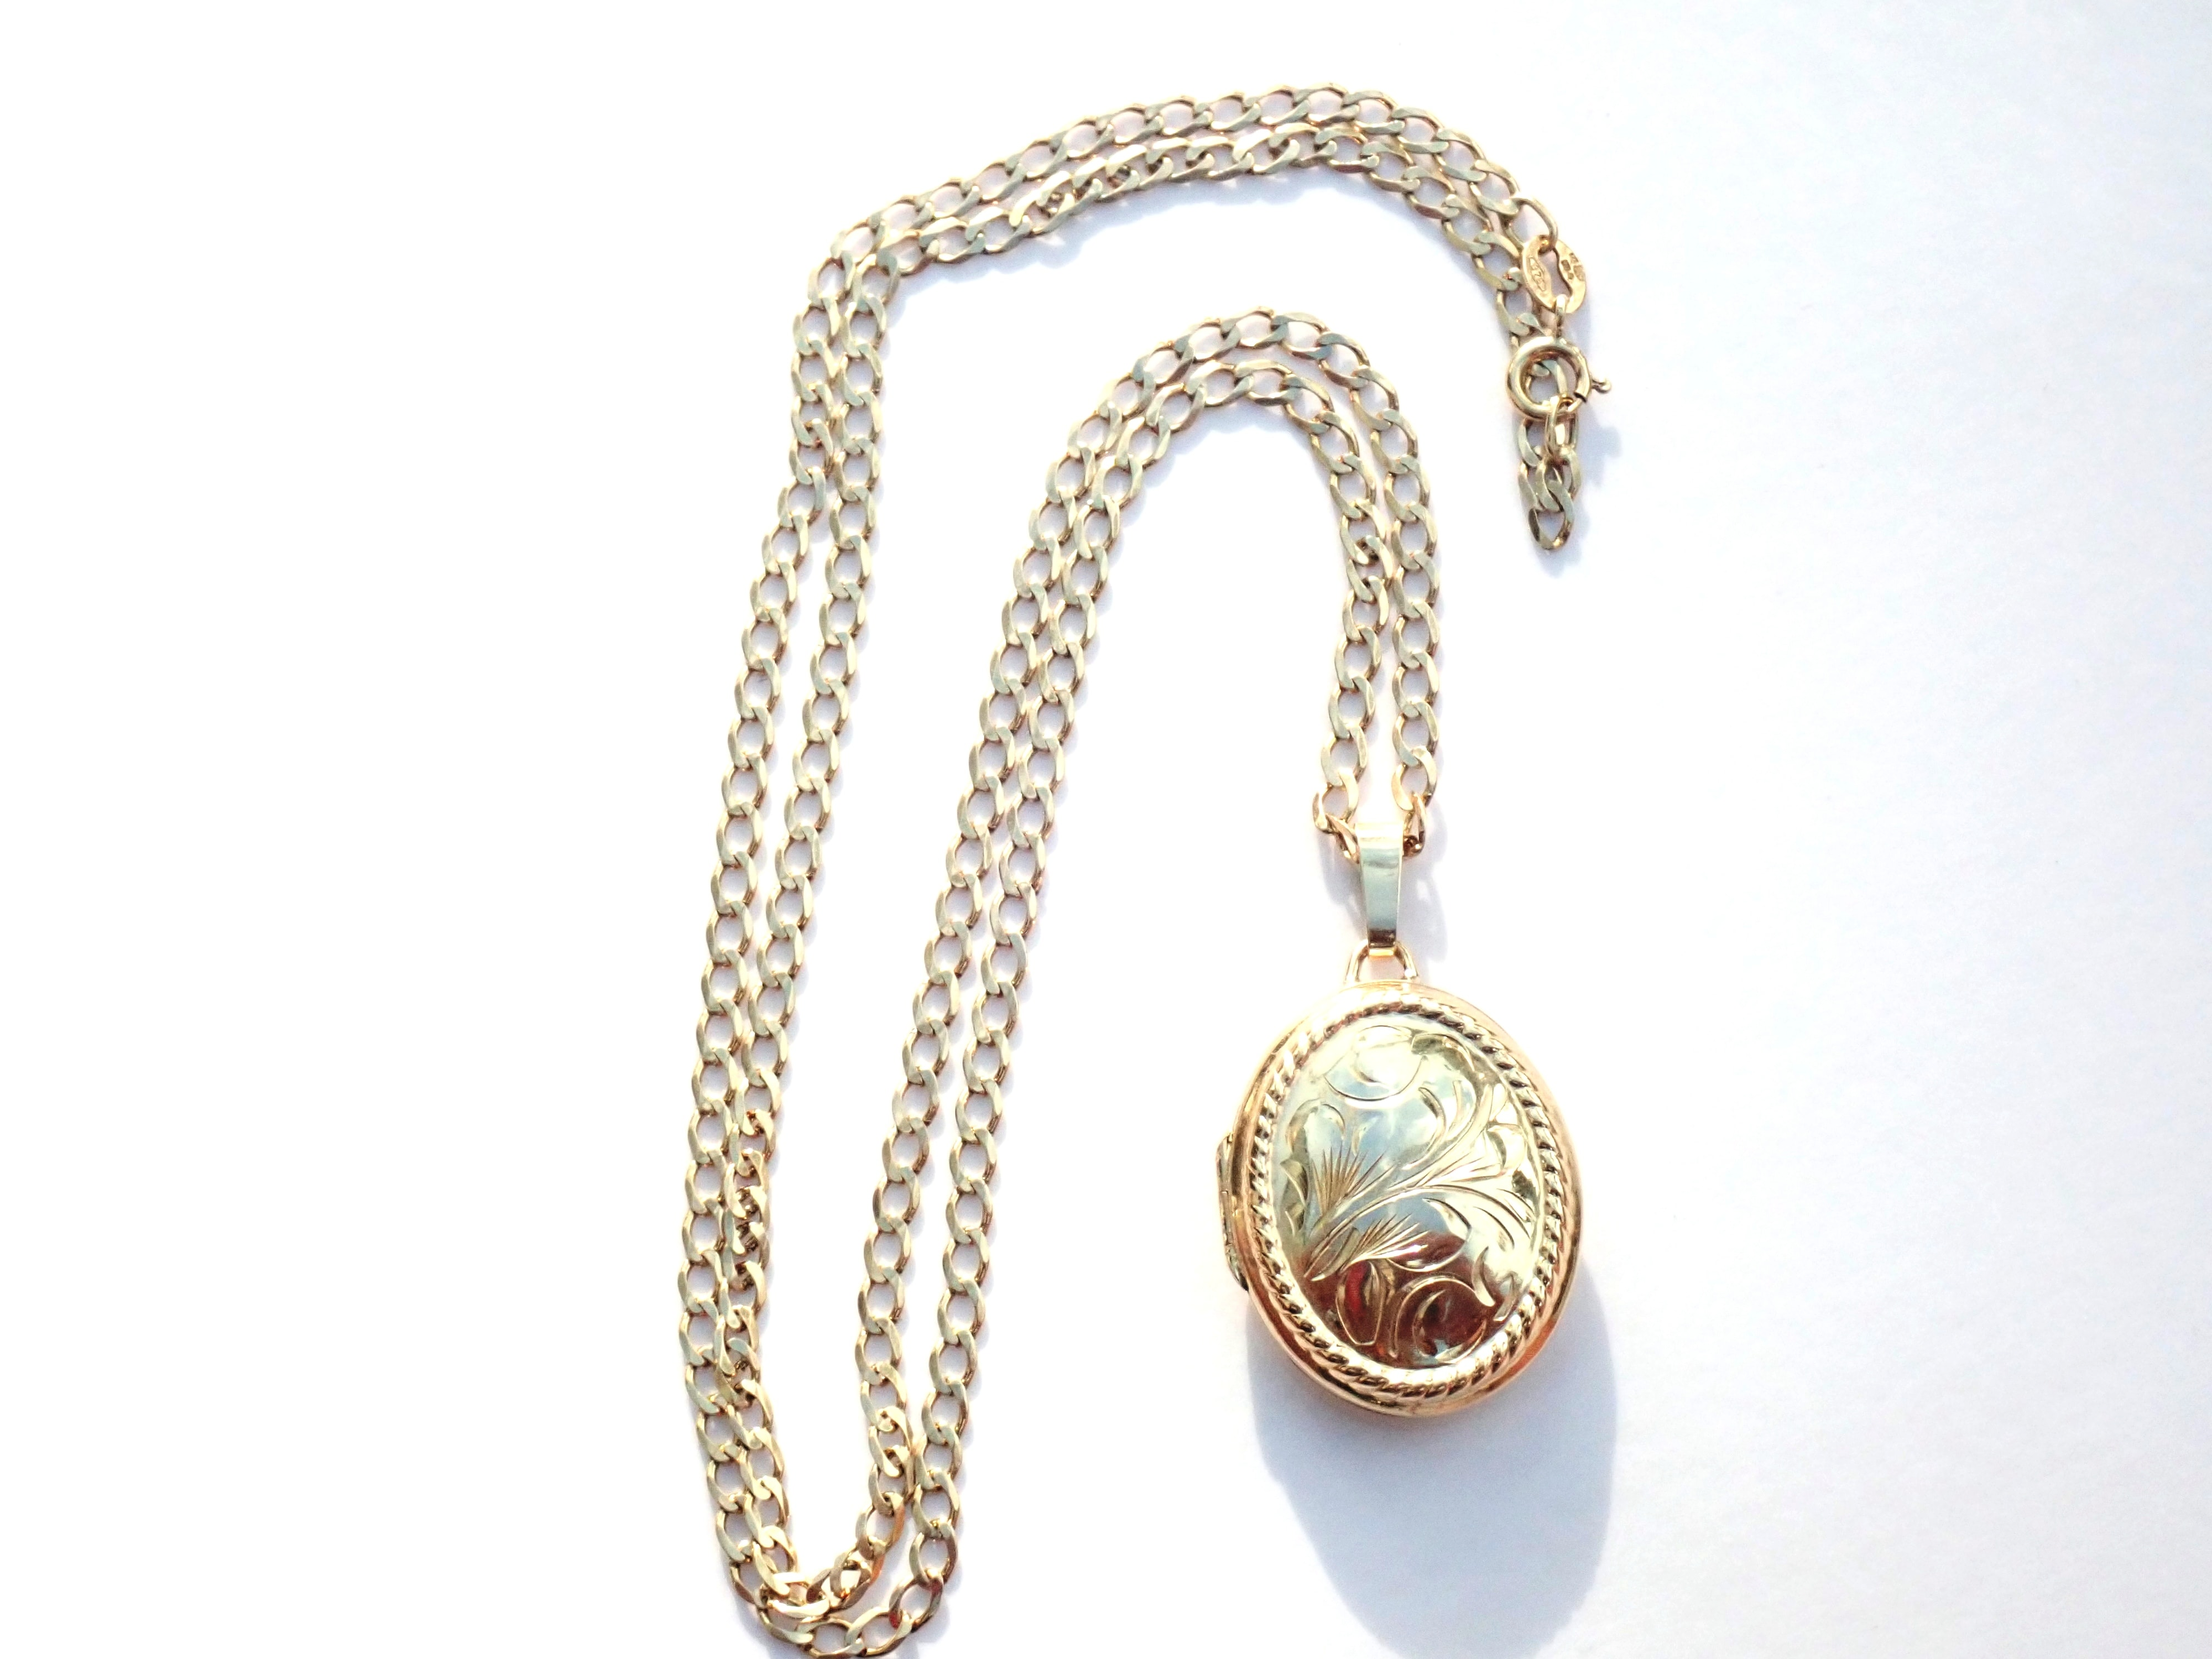 AA000934 - Solid 9K Yellow Gold Floral Patterned Oval Locket & Gold chain Necklace 4.5g #80